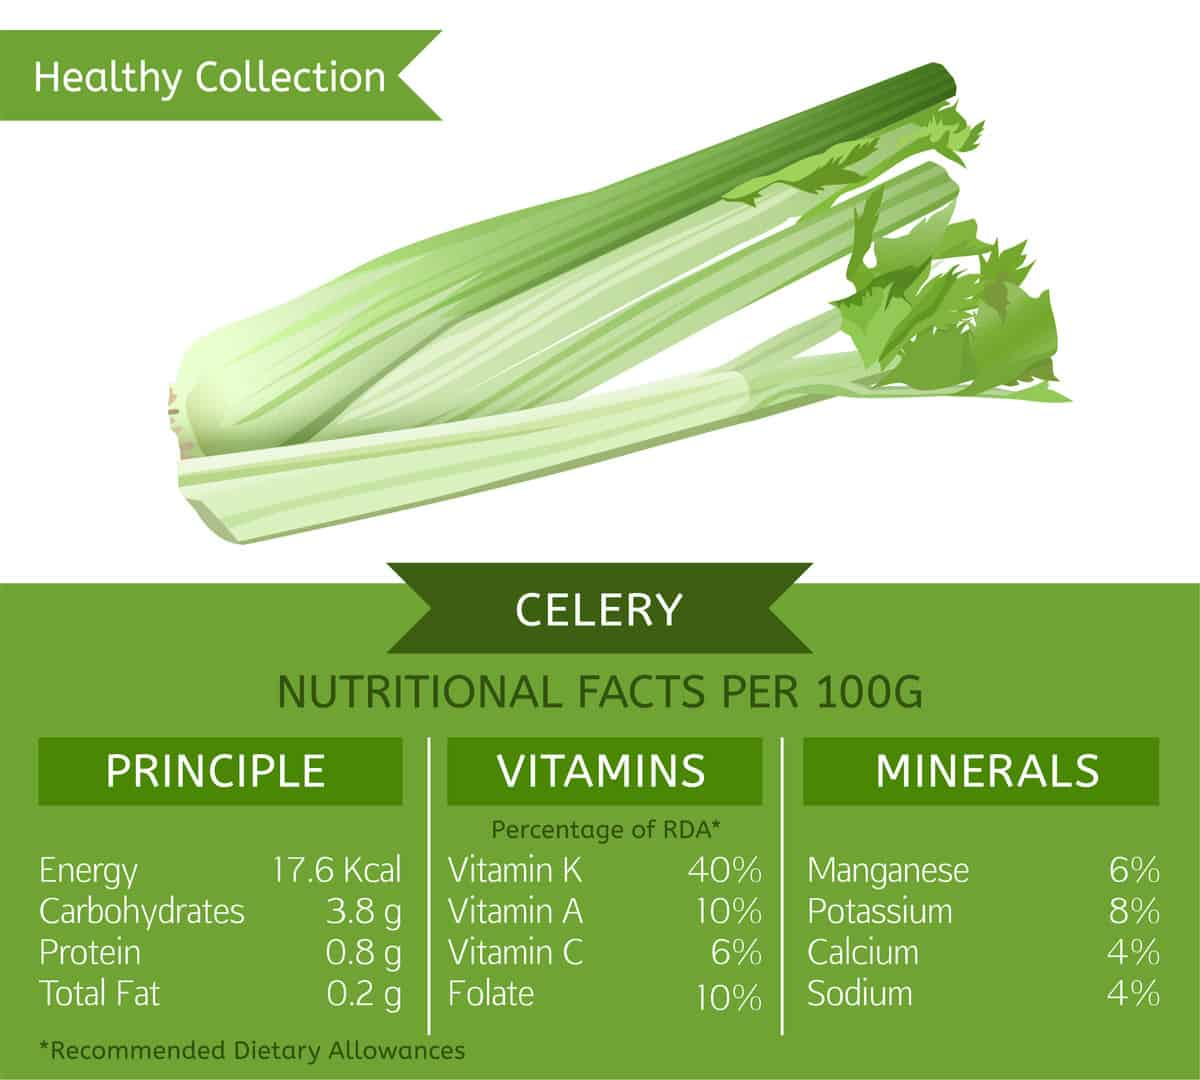 Celery nutrition facts chart